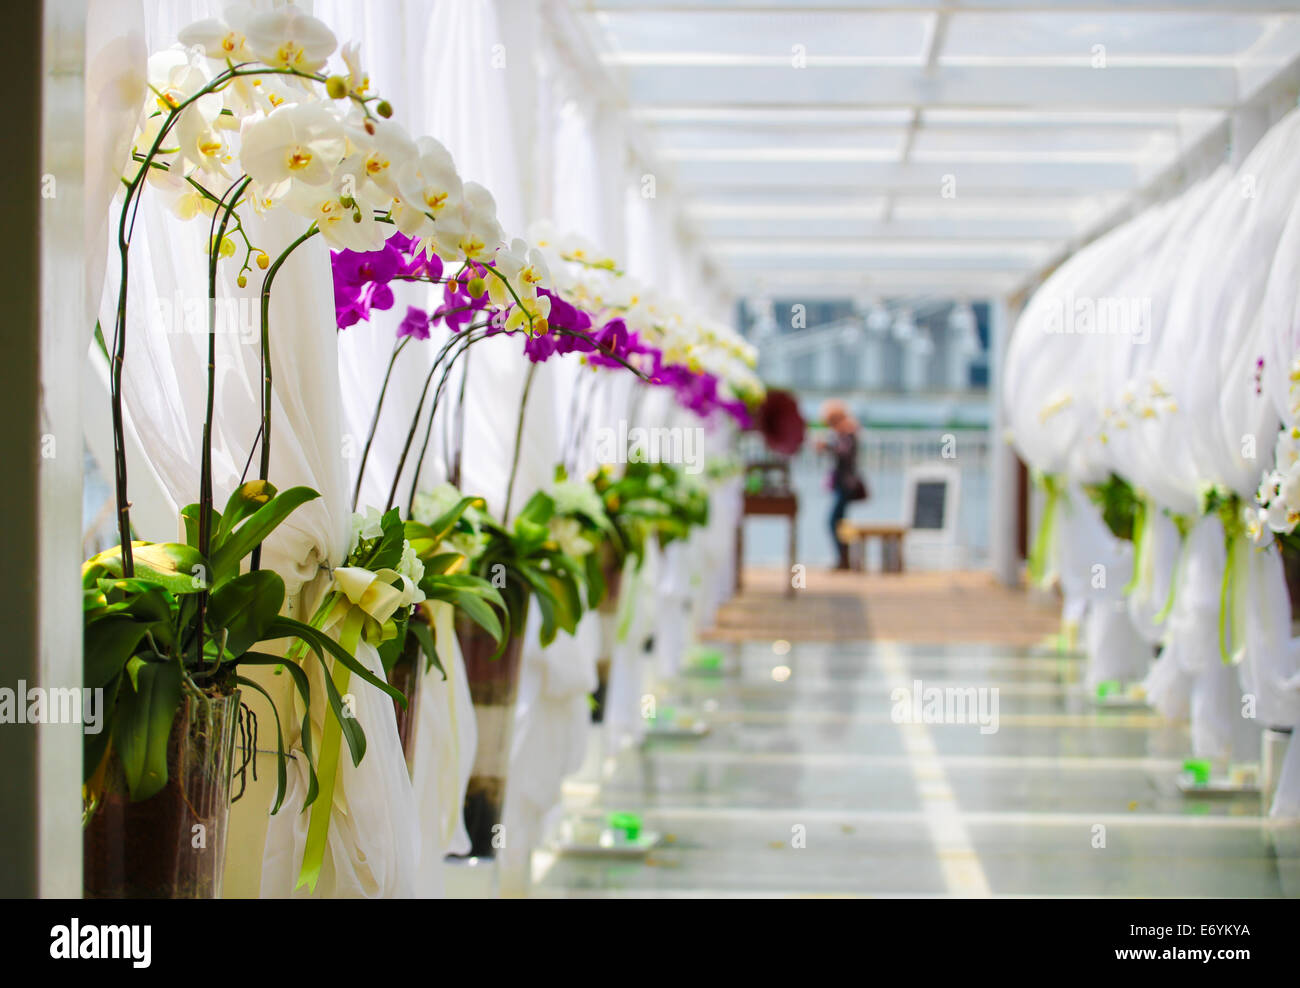 Wedding Corridor Decorated With White Clothes And Orchid Flowers